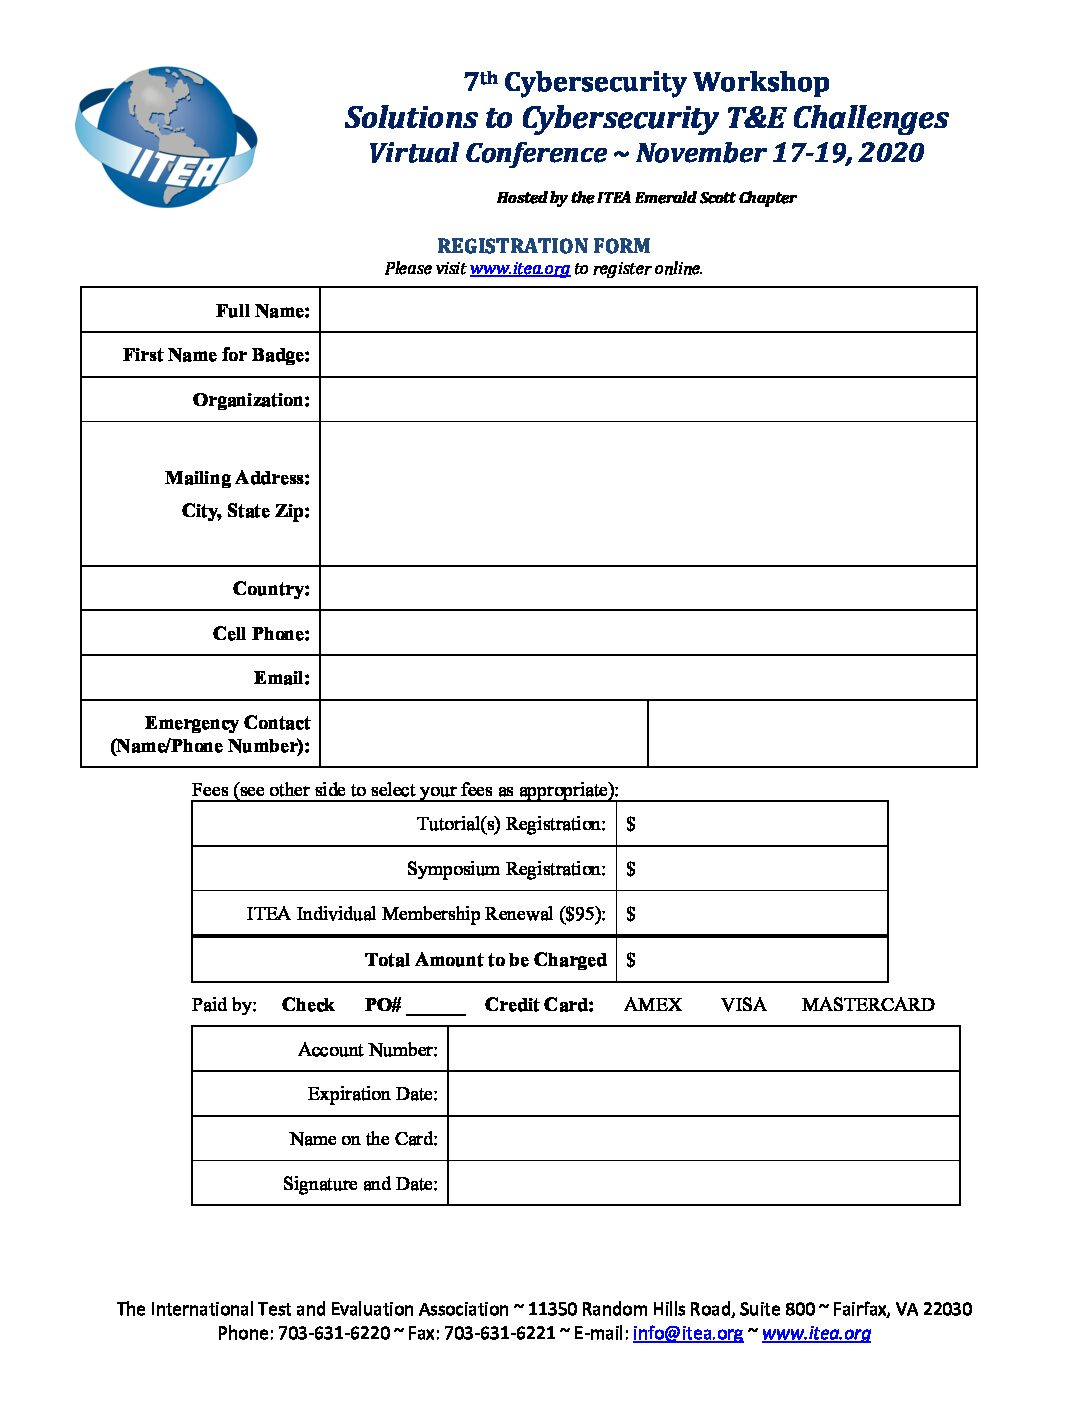 2020 Virtual Cybersecurity Registration Form